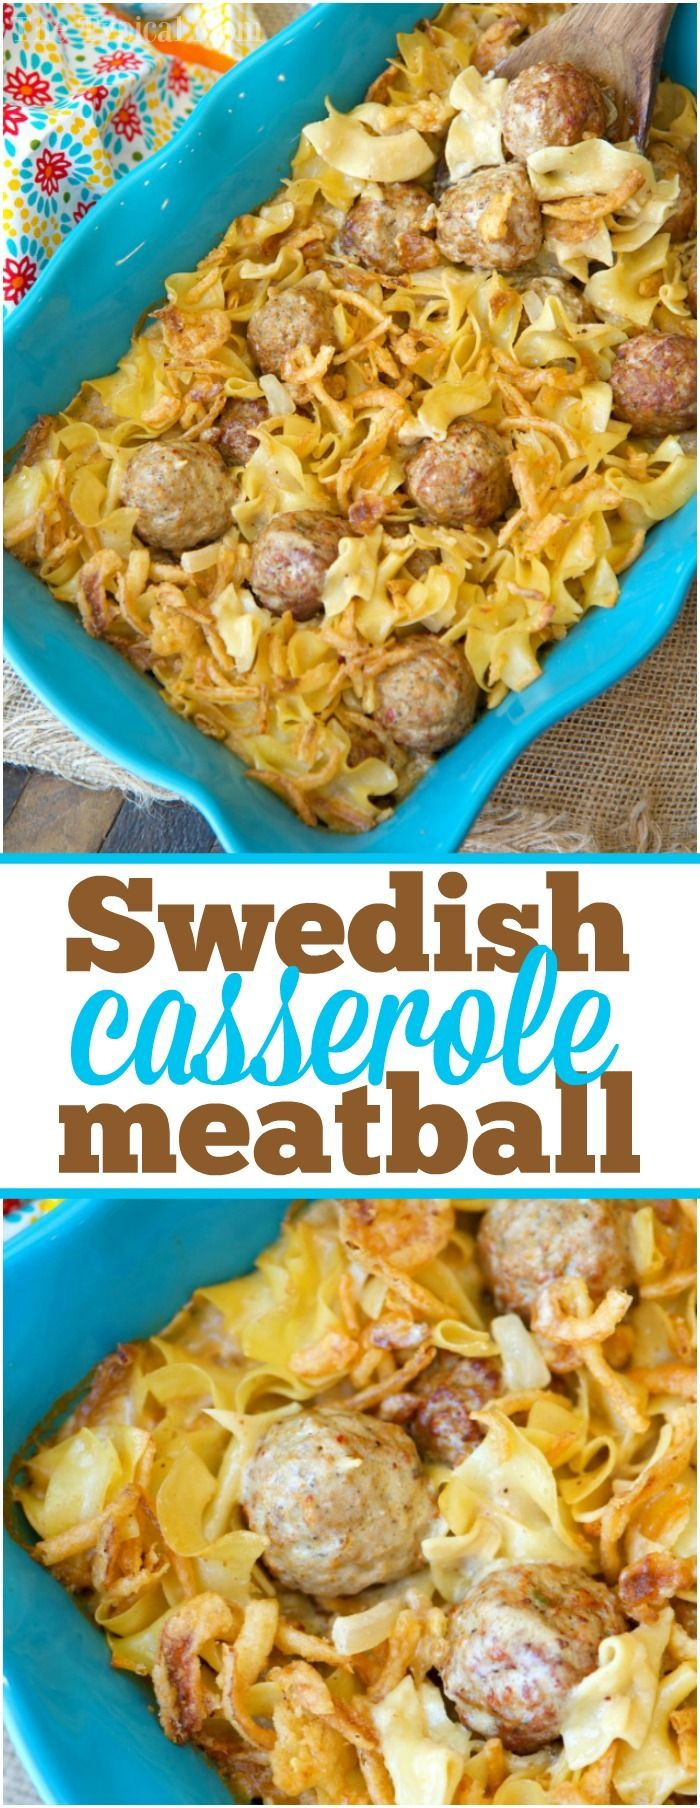 This easy Swedish meatball casserole recipe will bring you back to your childhood! Creamy comfort food with crispy onions on top will make you want seconds. AD via @thetypicalmom